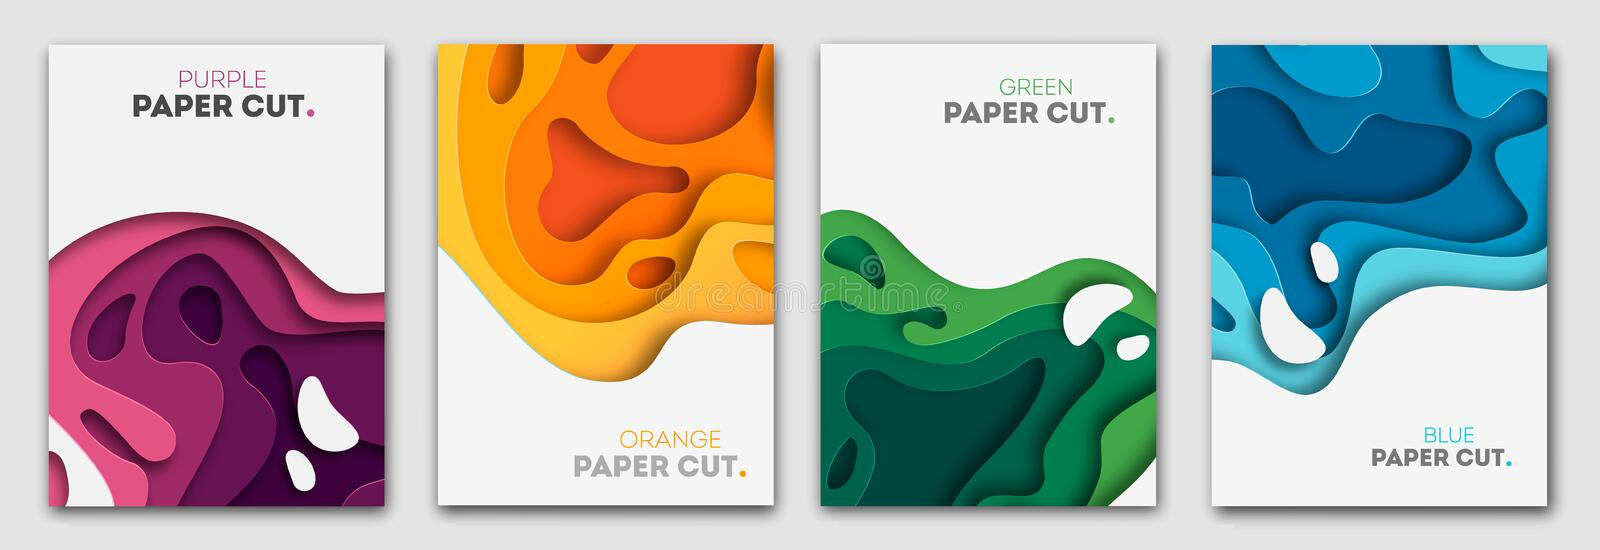 Vertical banners set with 3D abstract background and paper cut shapes. Vector design layout for business presentations. Flyers, posters and invitations stock illustration